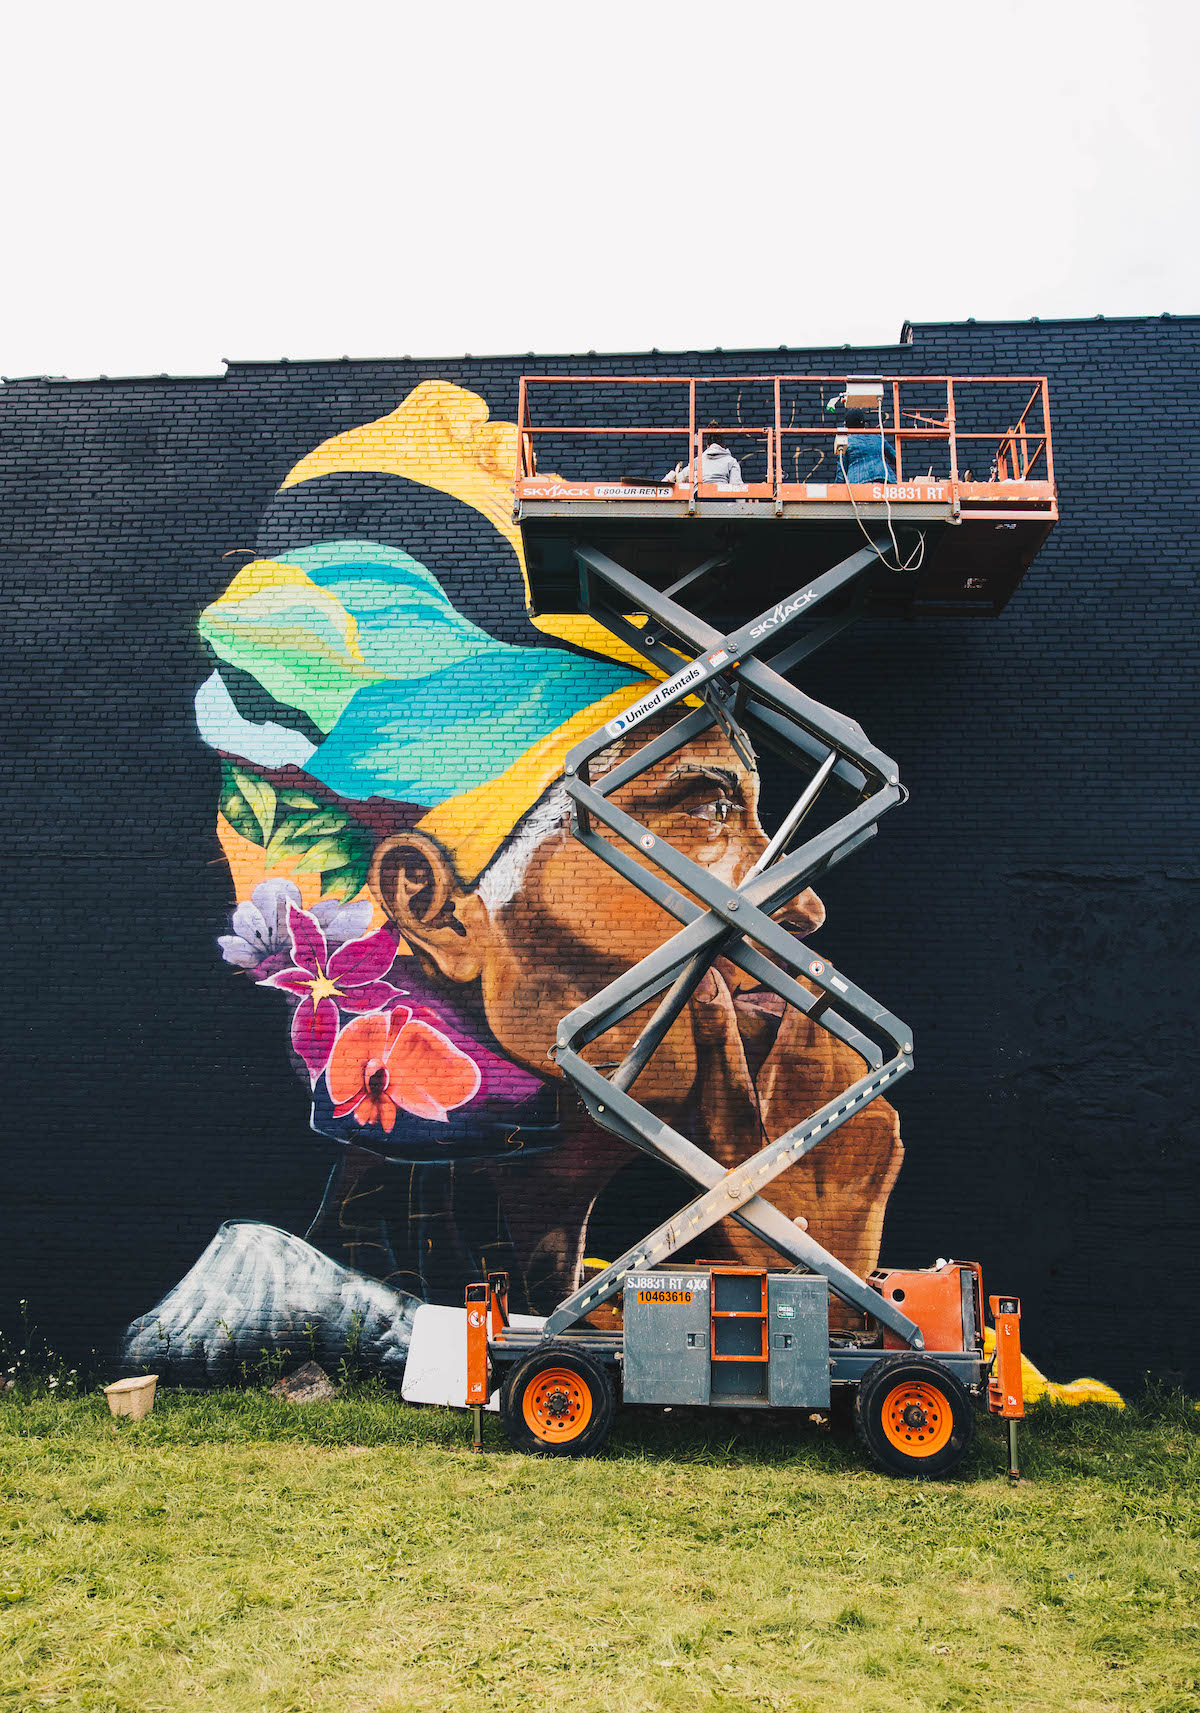 BLKOUT Walls Mural Festival in the City of Detroit